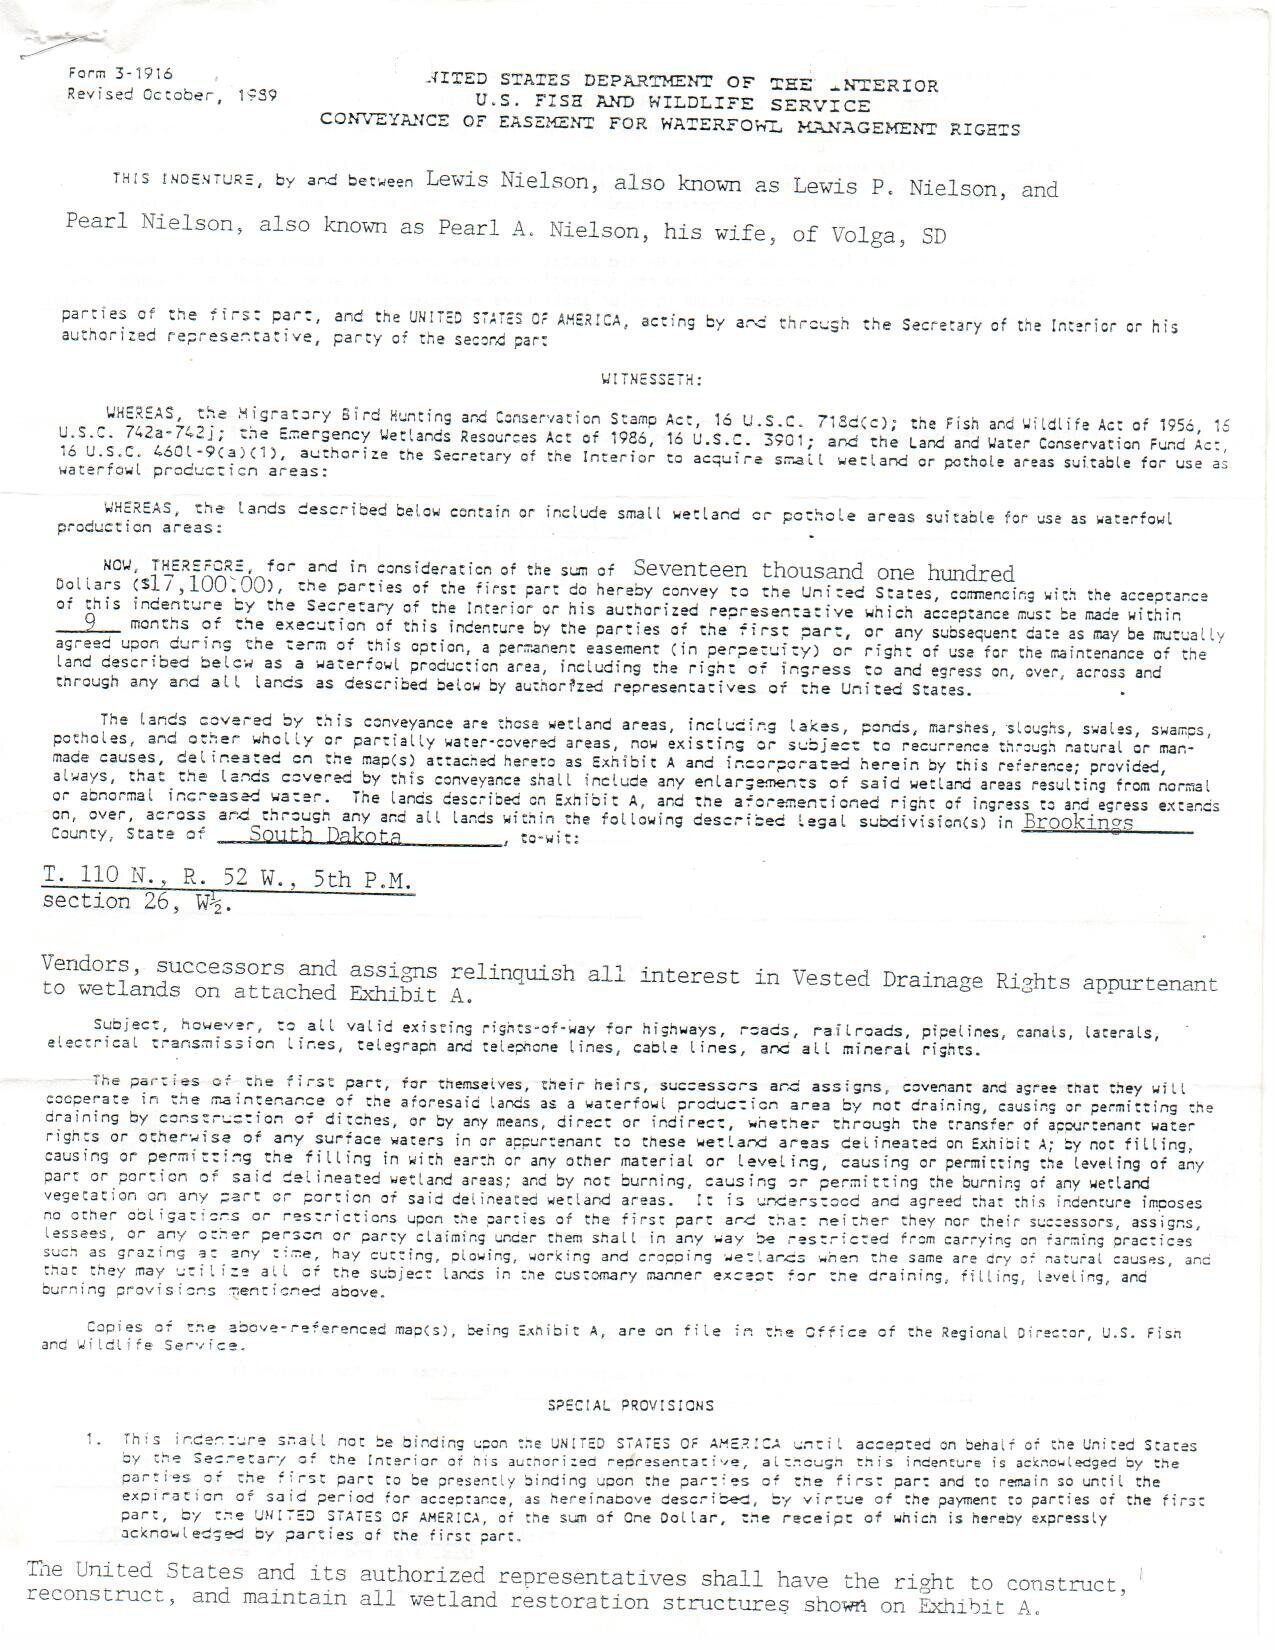 Easement Page 2